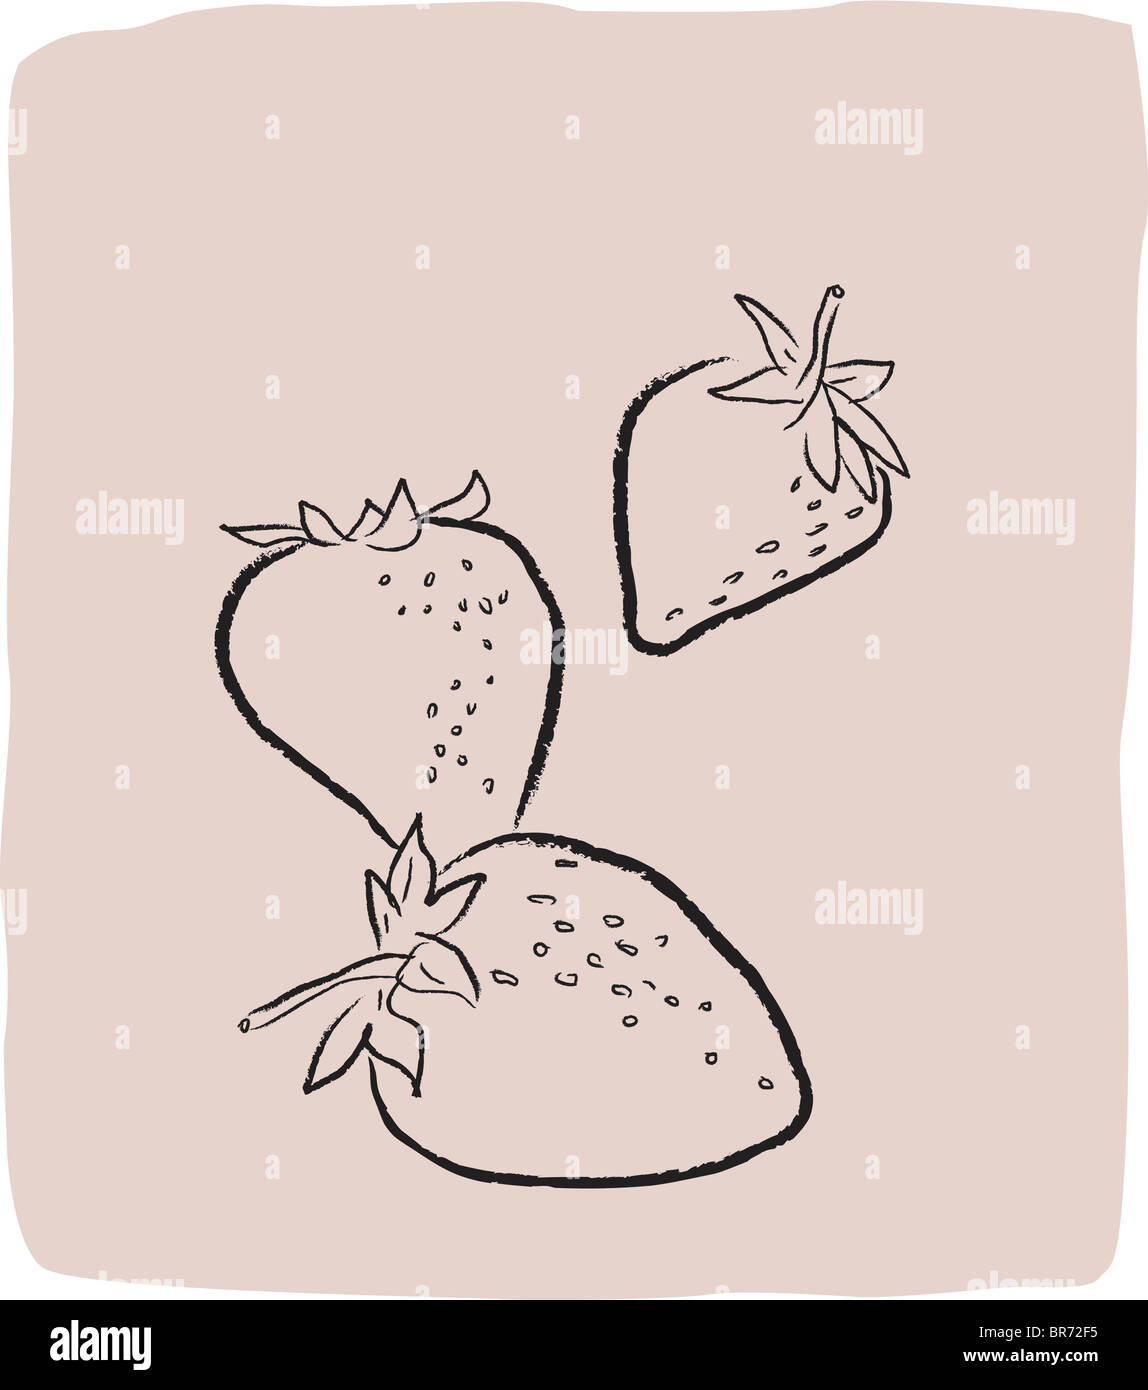 A textured line drawing of strawberries - Stock Image